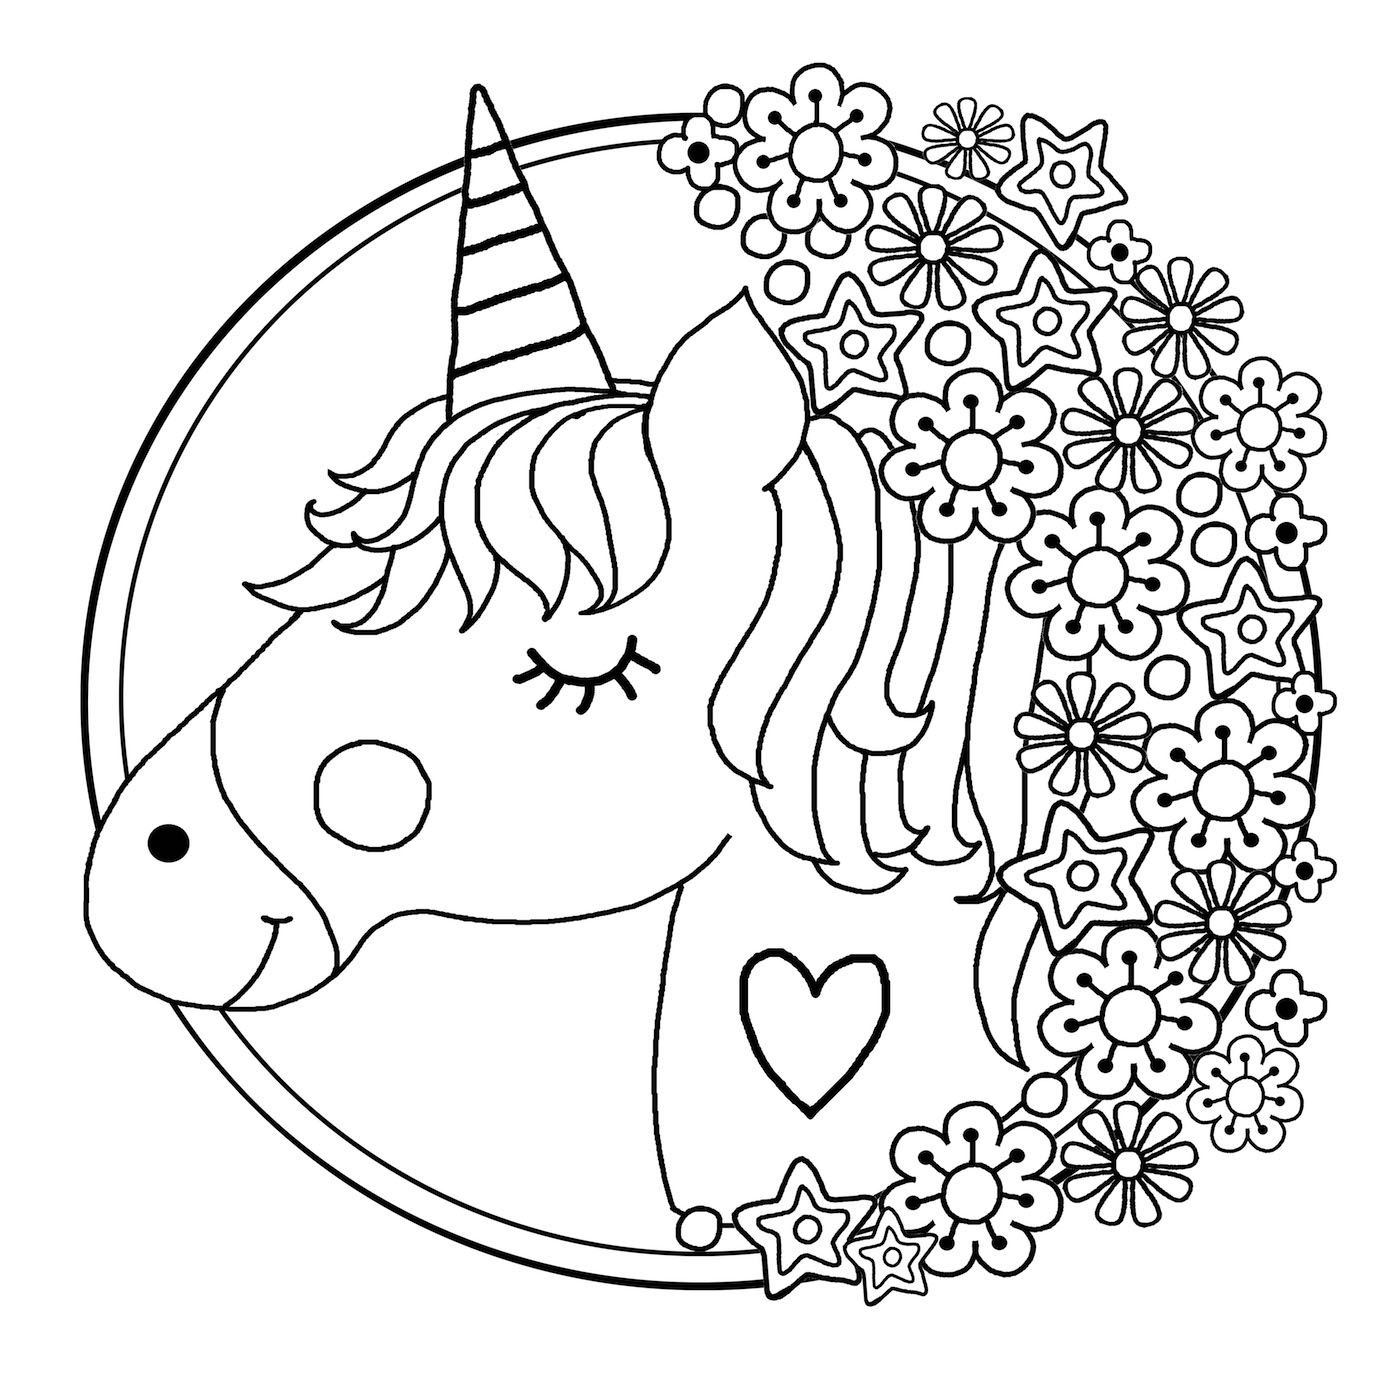 unicorn colouring picture 30 best free printable unicorn coloring pages online unicorn colouring picture